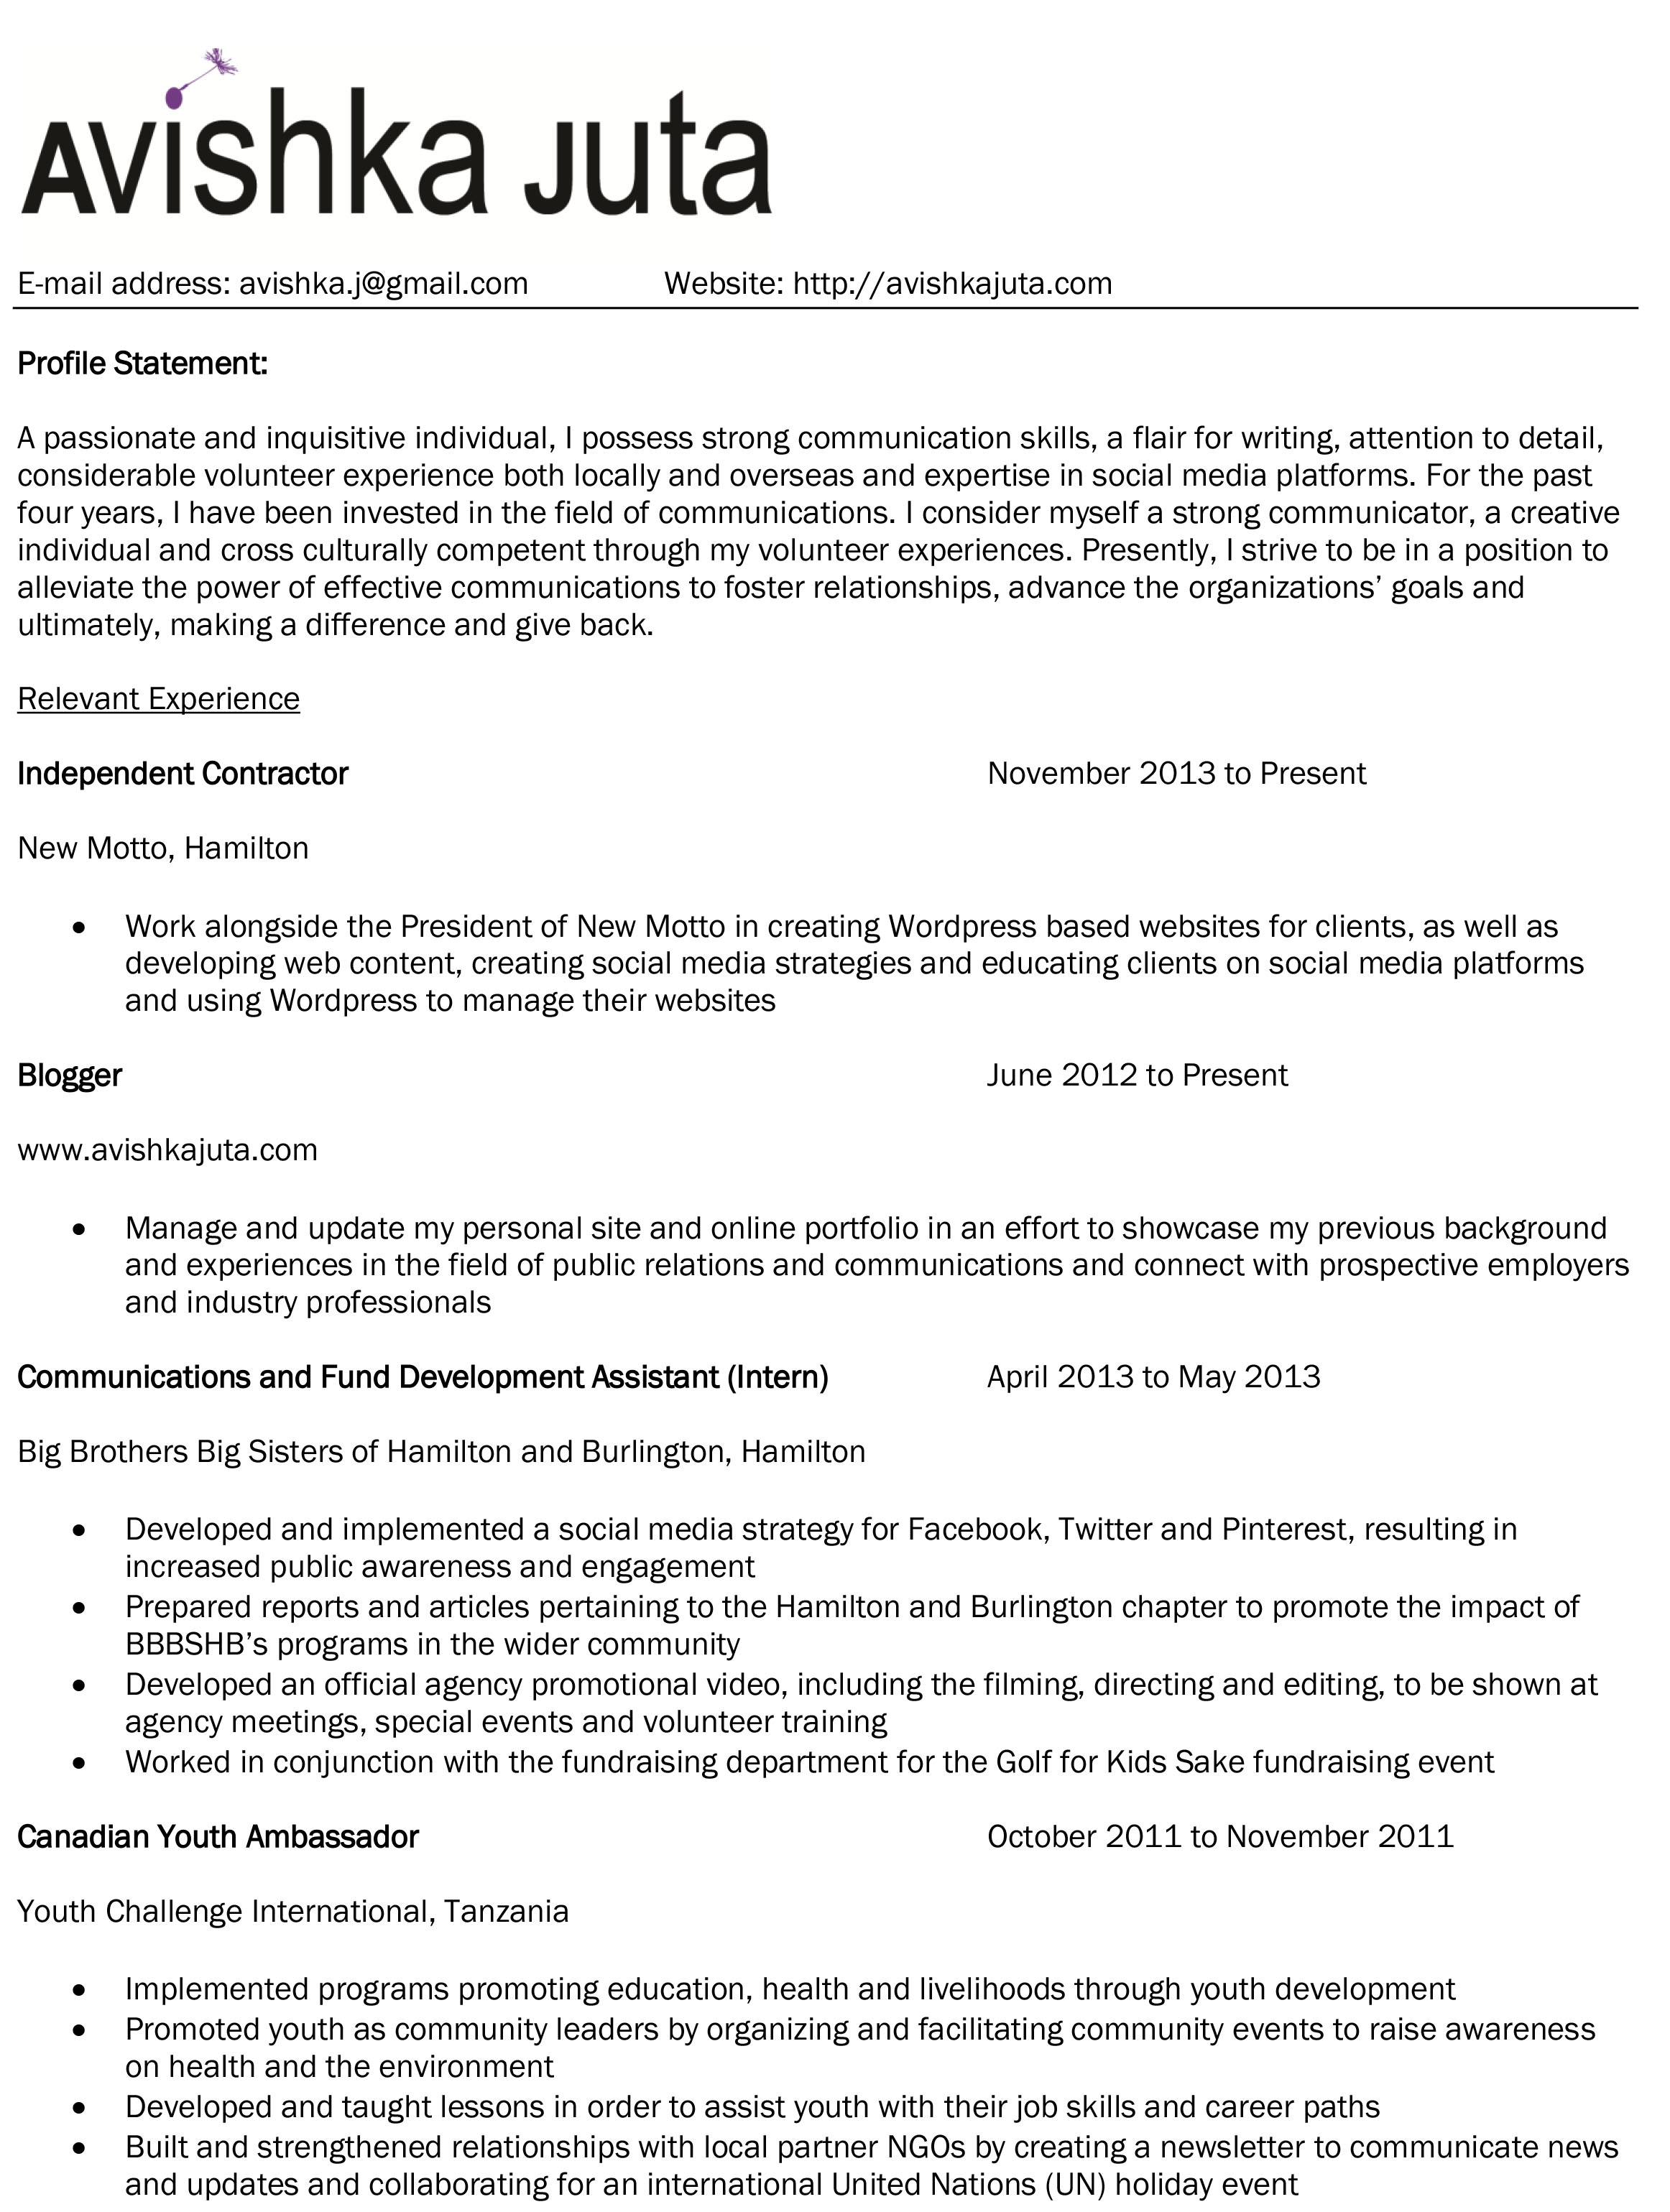 areas of expertise on a resume